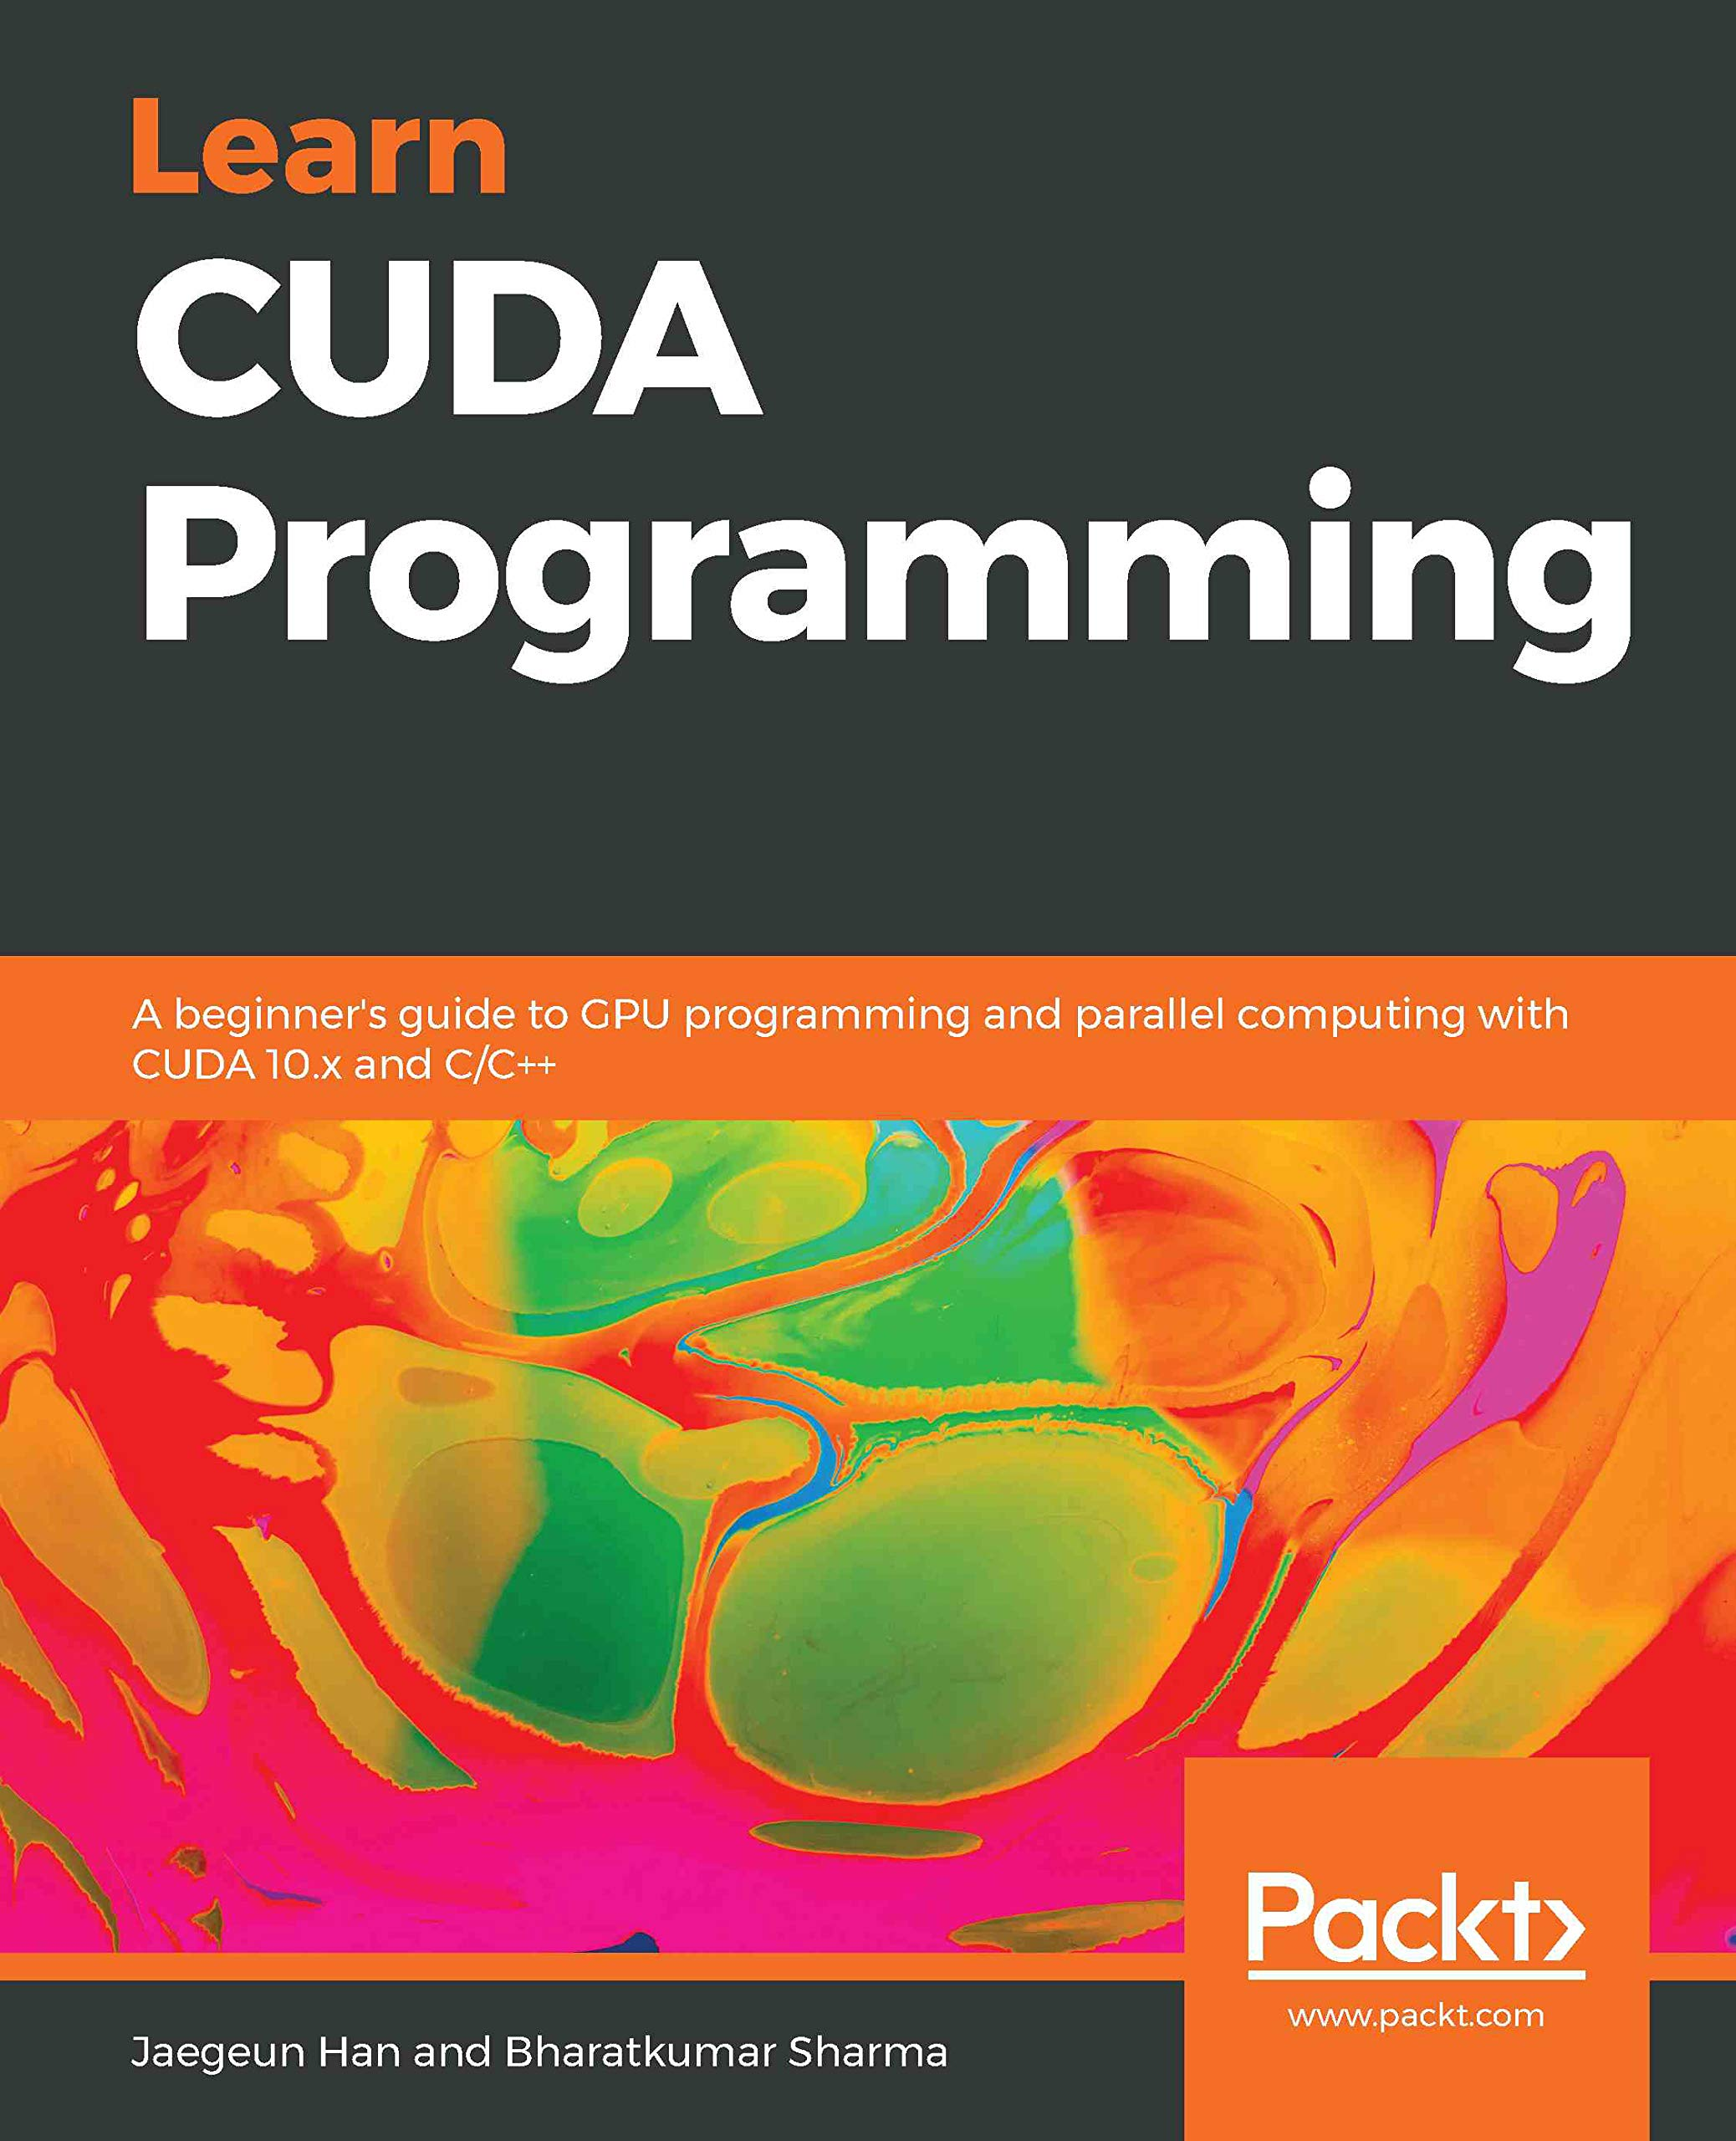 Learn CUDA Programming: A Beginner's Guide To GPU Programming And Parallel Computing With CUDA 10.x And C/C++ (English Edi...